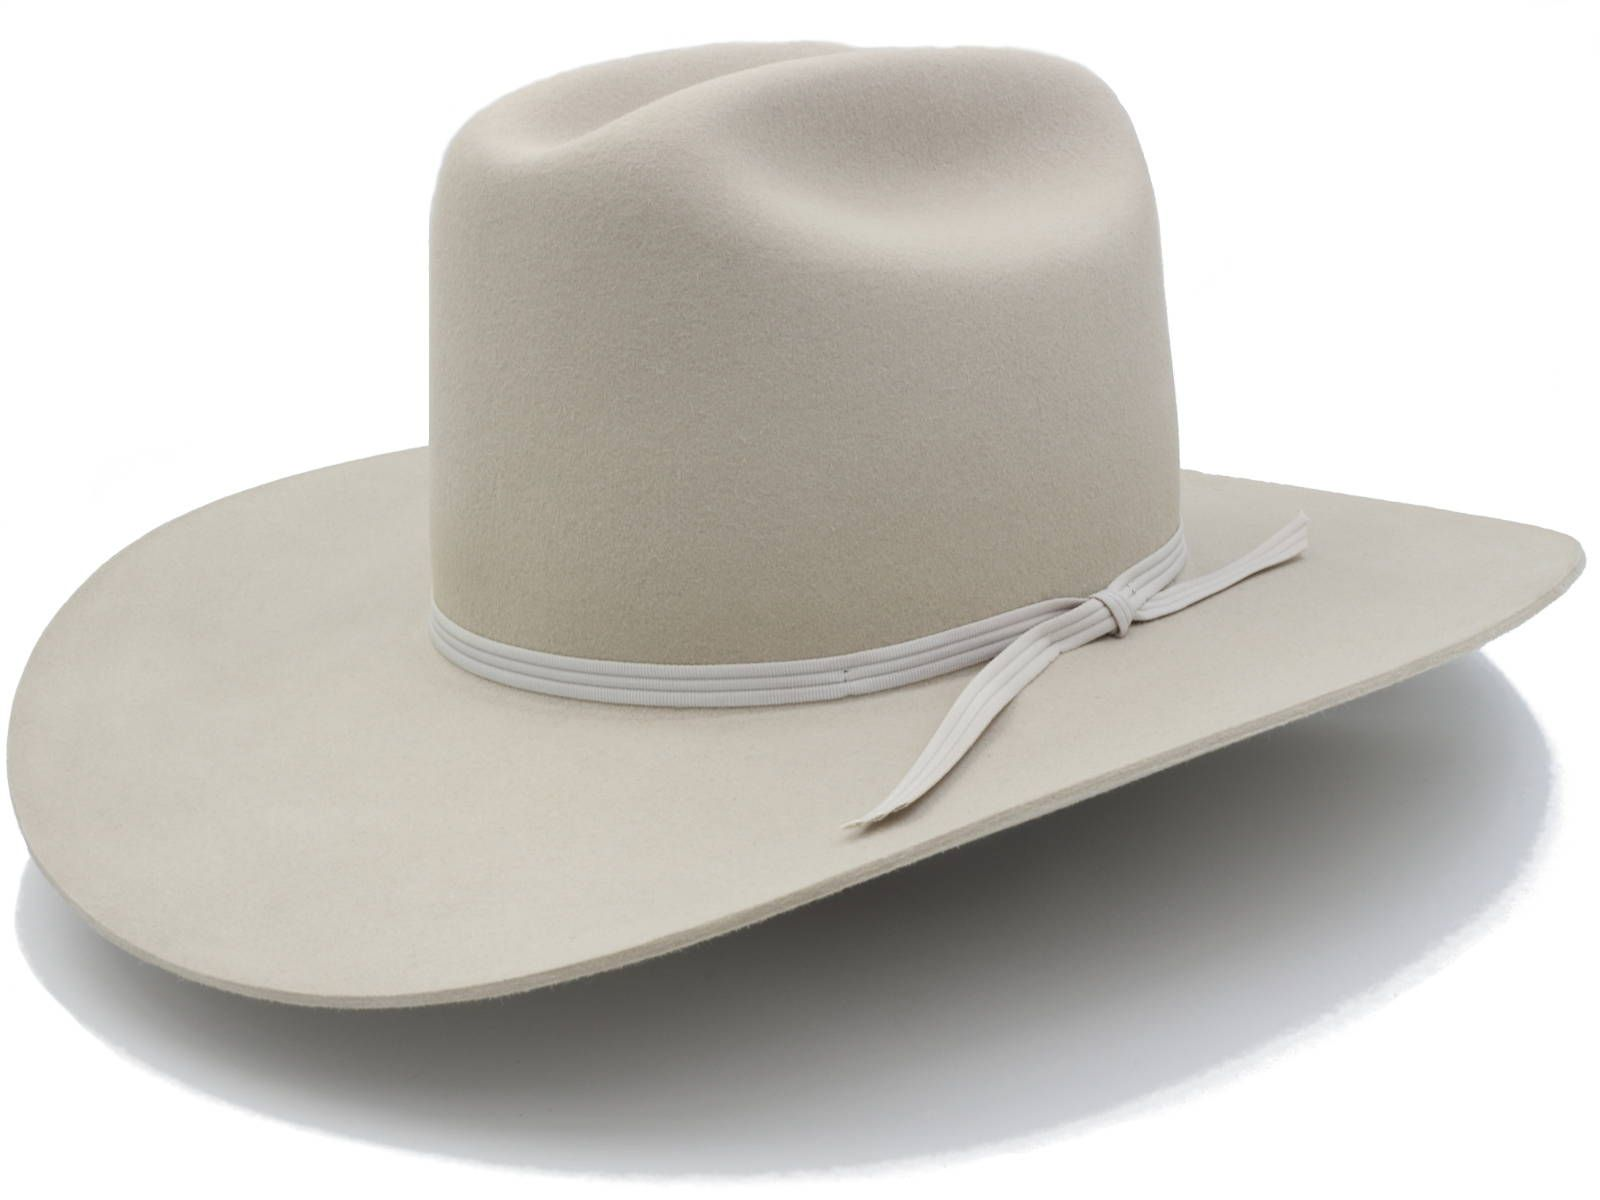 e88129a7f767d Western Style Felt Hat - Stratton Hats - Made in the USA